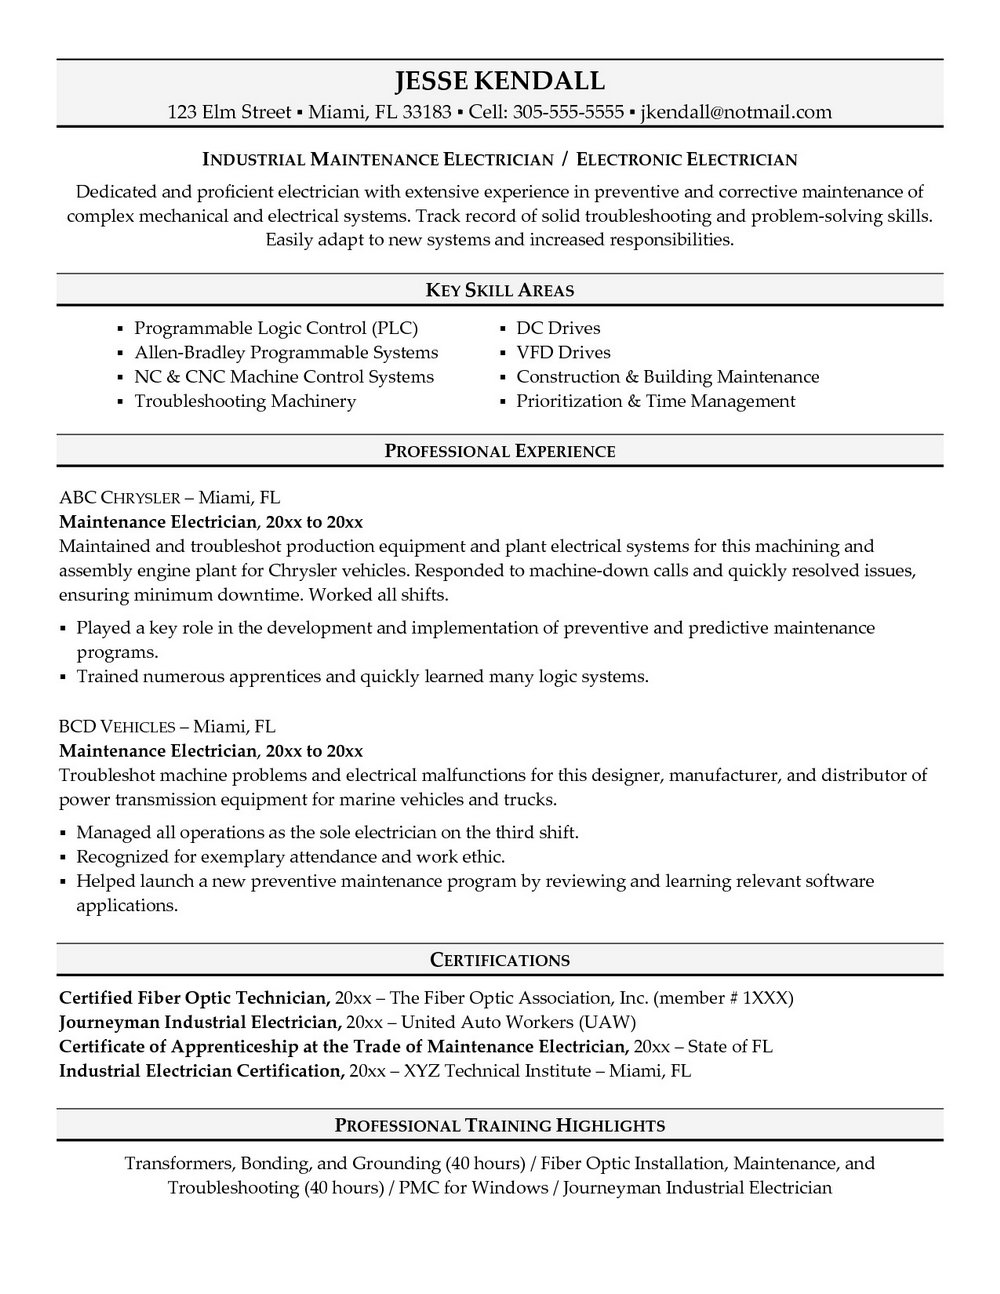 Journeyman Electrician Resume Template - Resumes #1496 | Resume Examples